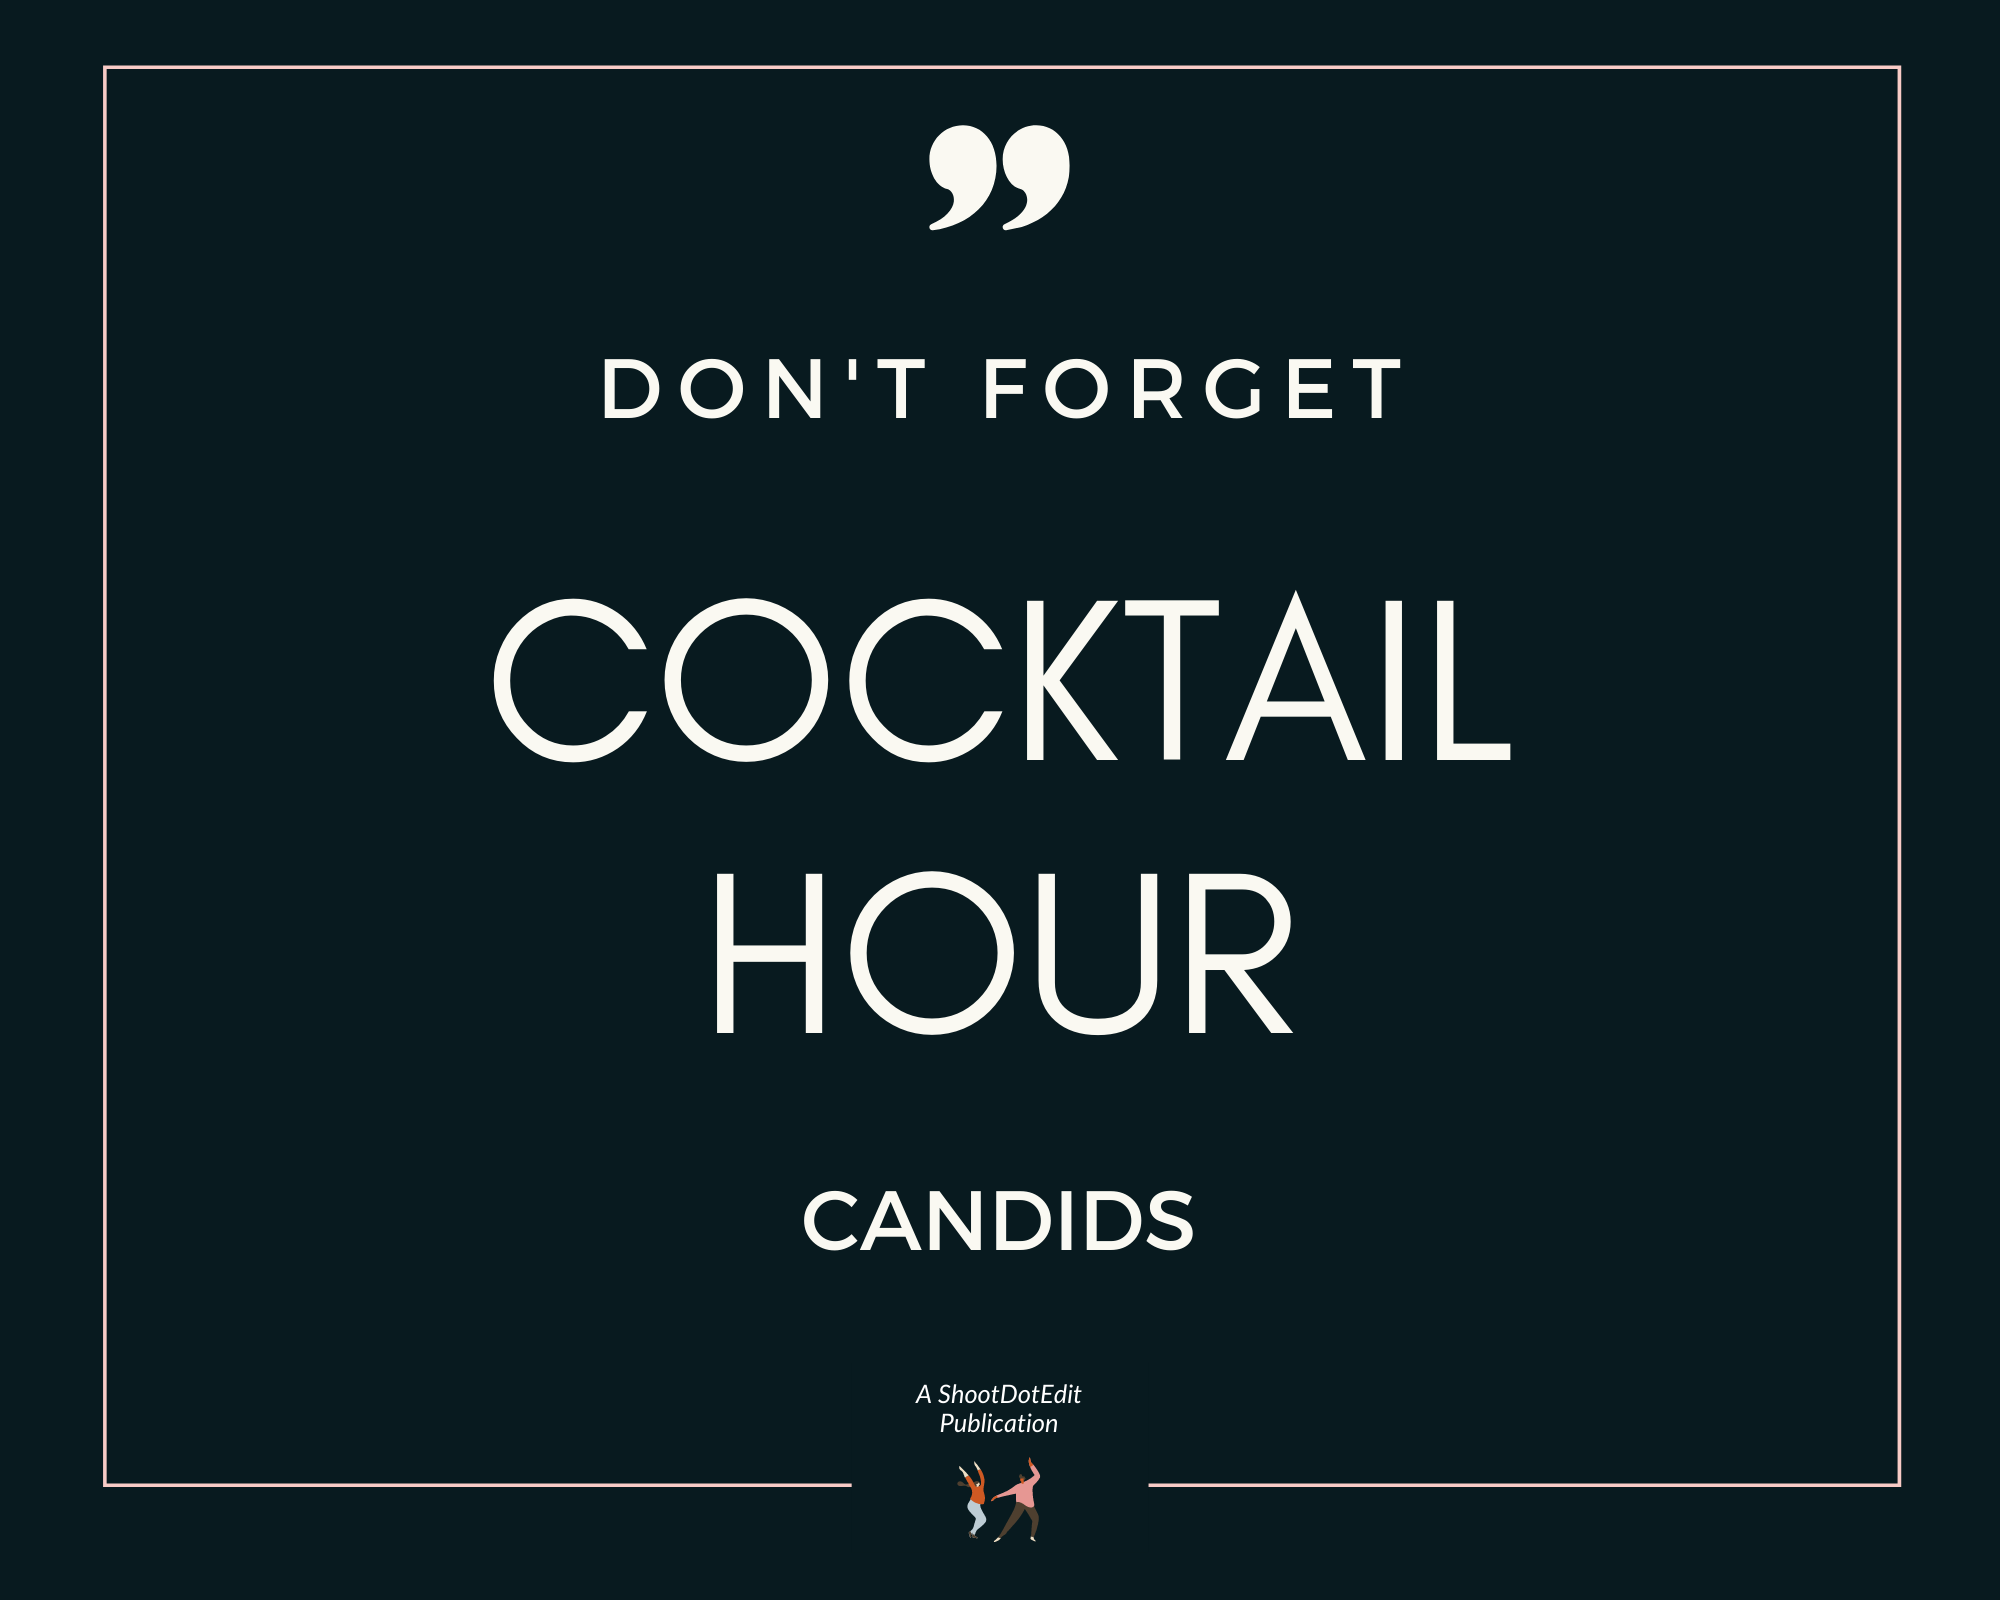 Infographic stating don't forget cocktail hour candids